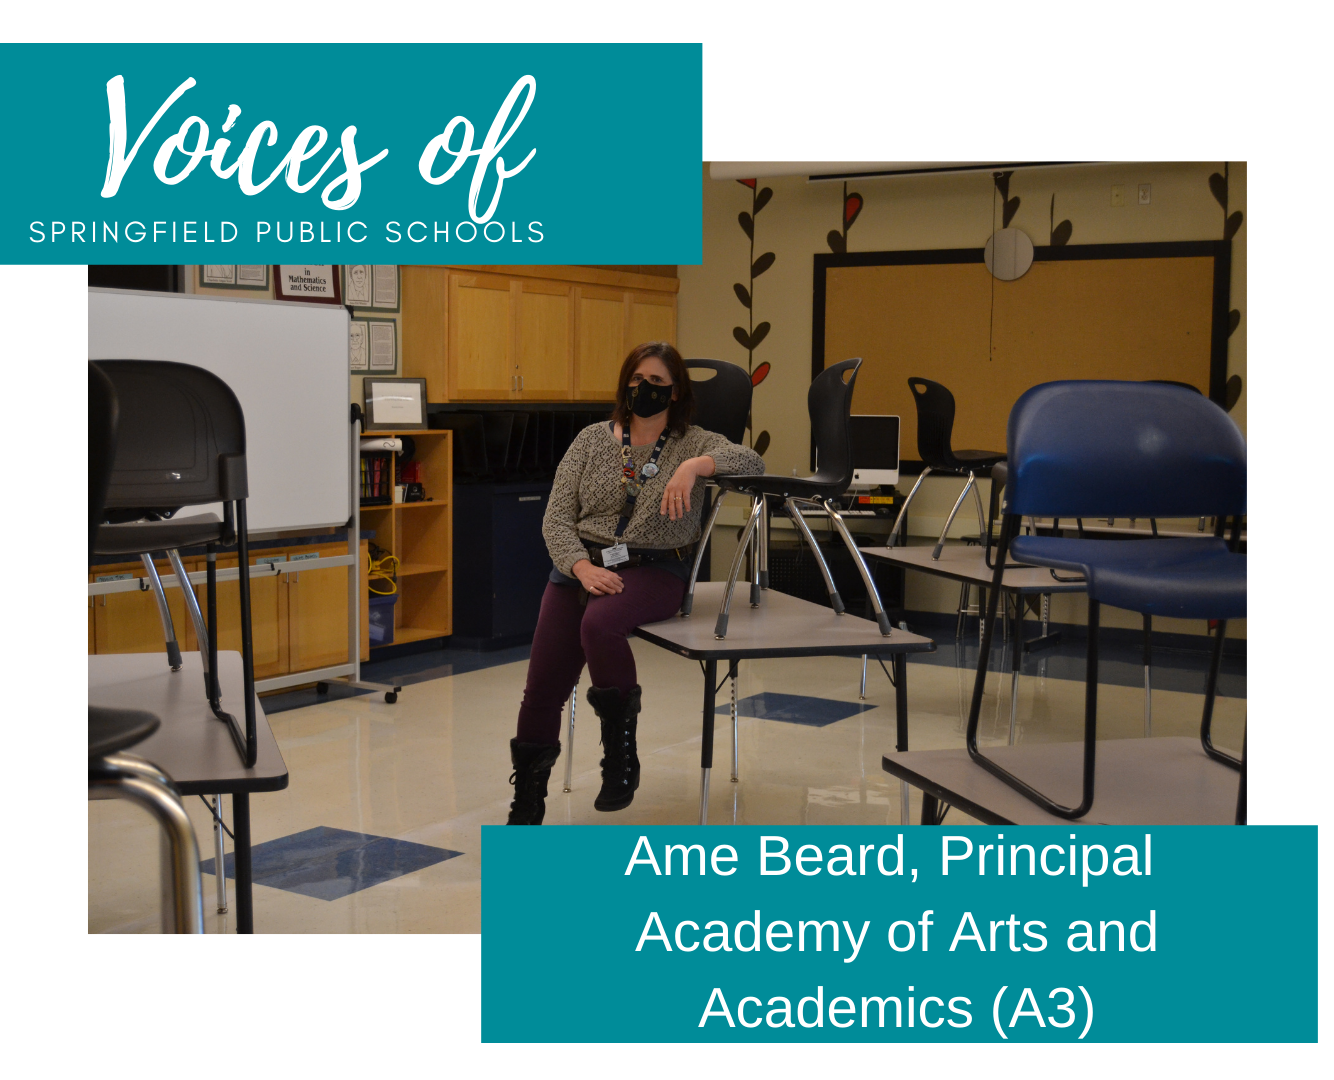 Ame Beard A3 Principal - Voices of SPS